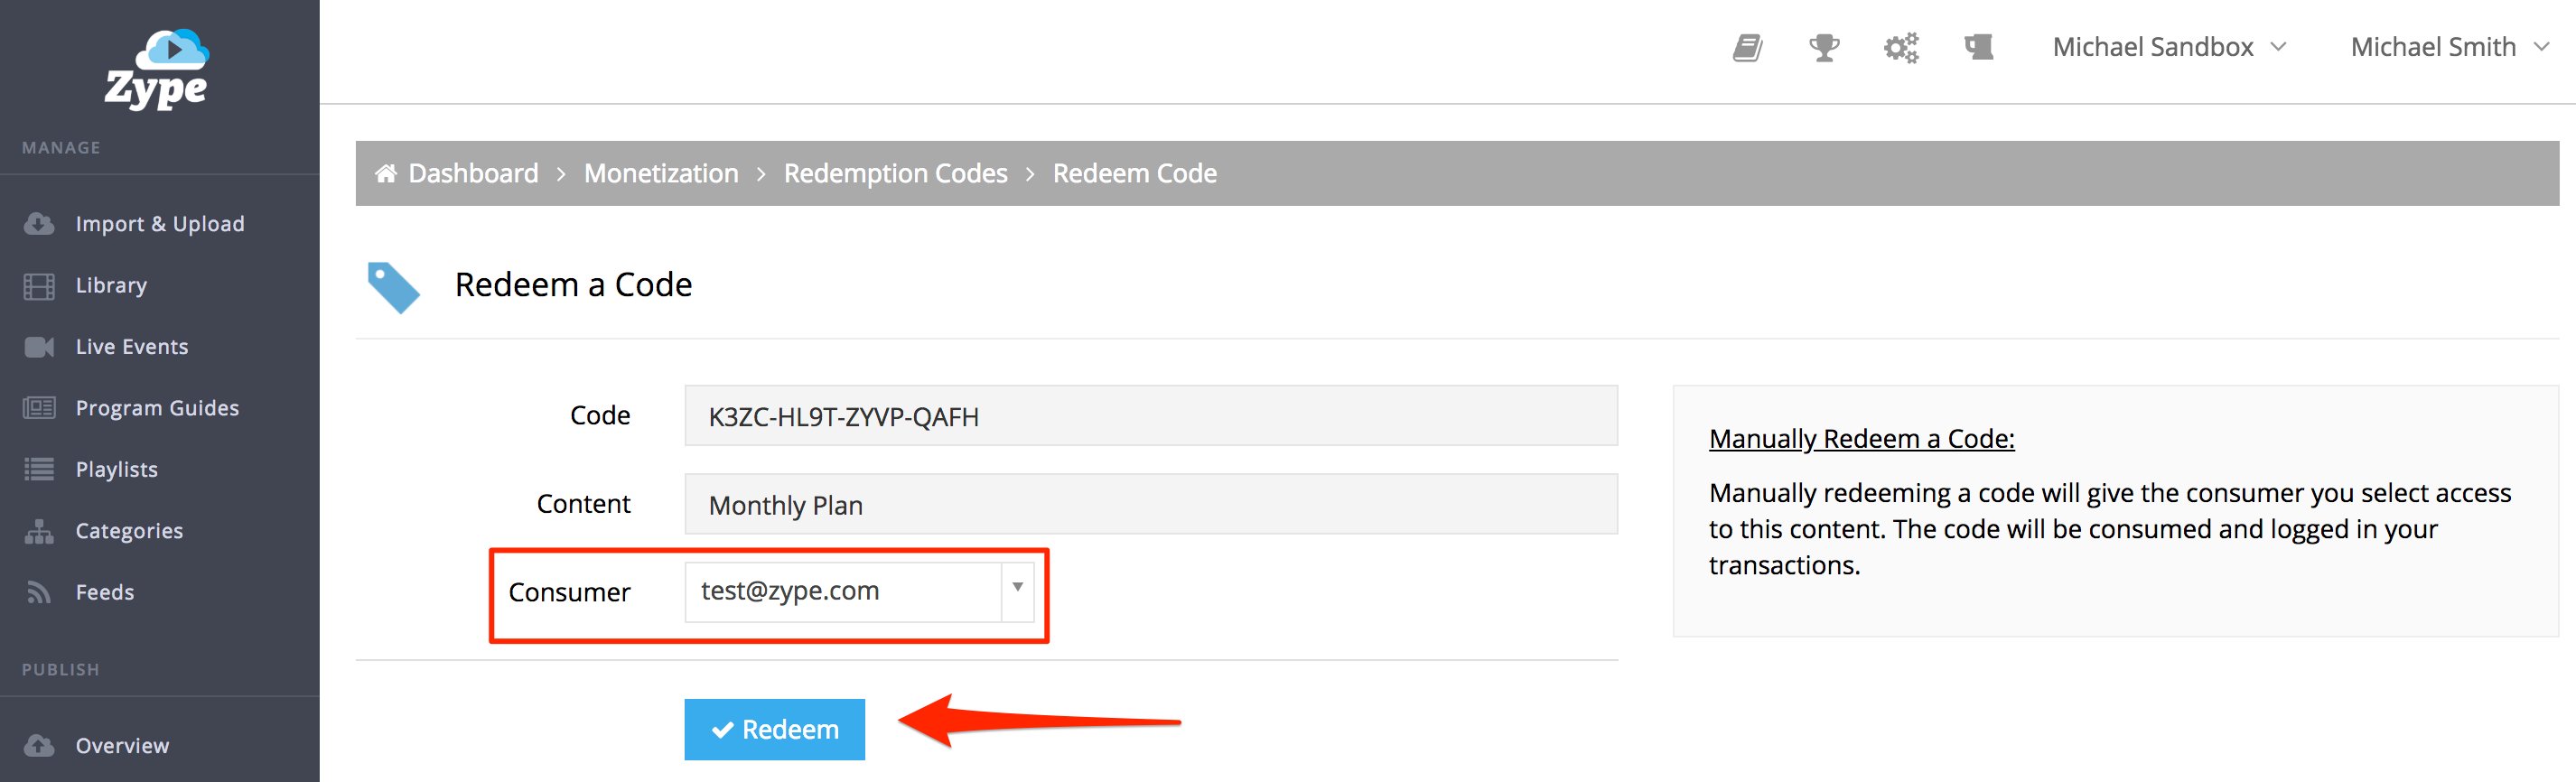 Redeeming Codes in the Dashboard – Help Center